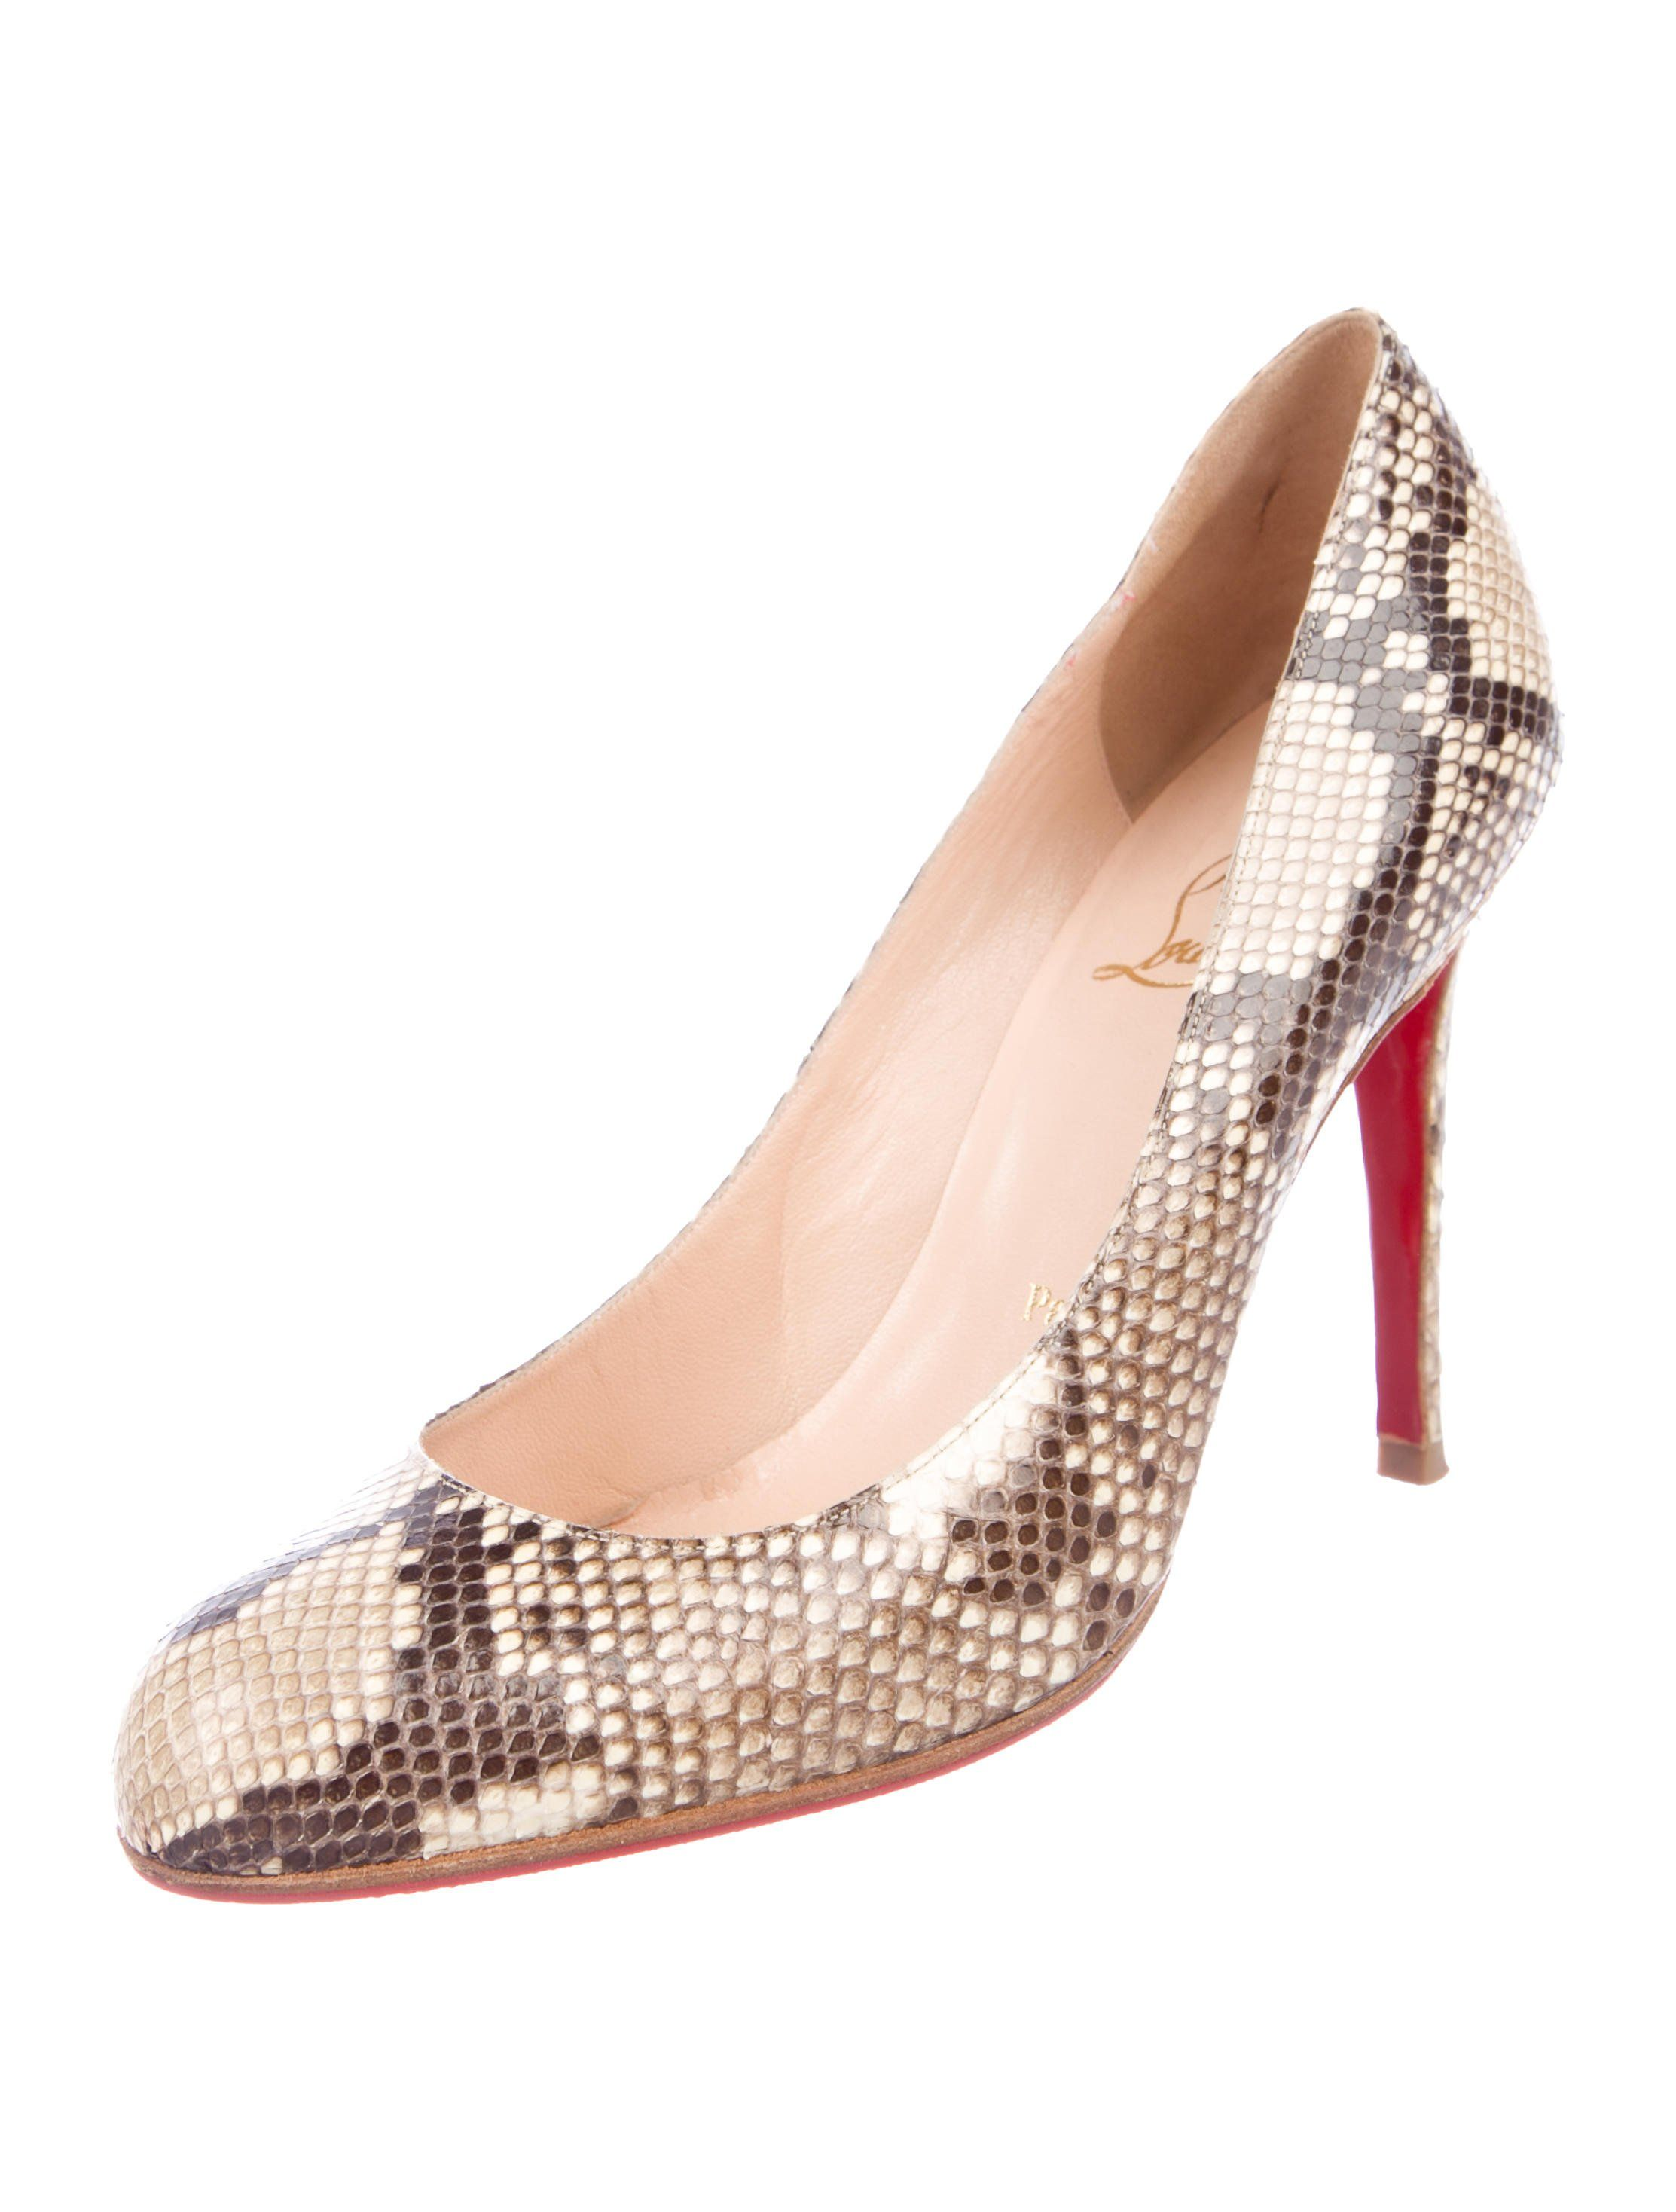 release date c28a3 8d4ce Tan snakeskin Christian Louboutin round-toe pumps with tonal ...